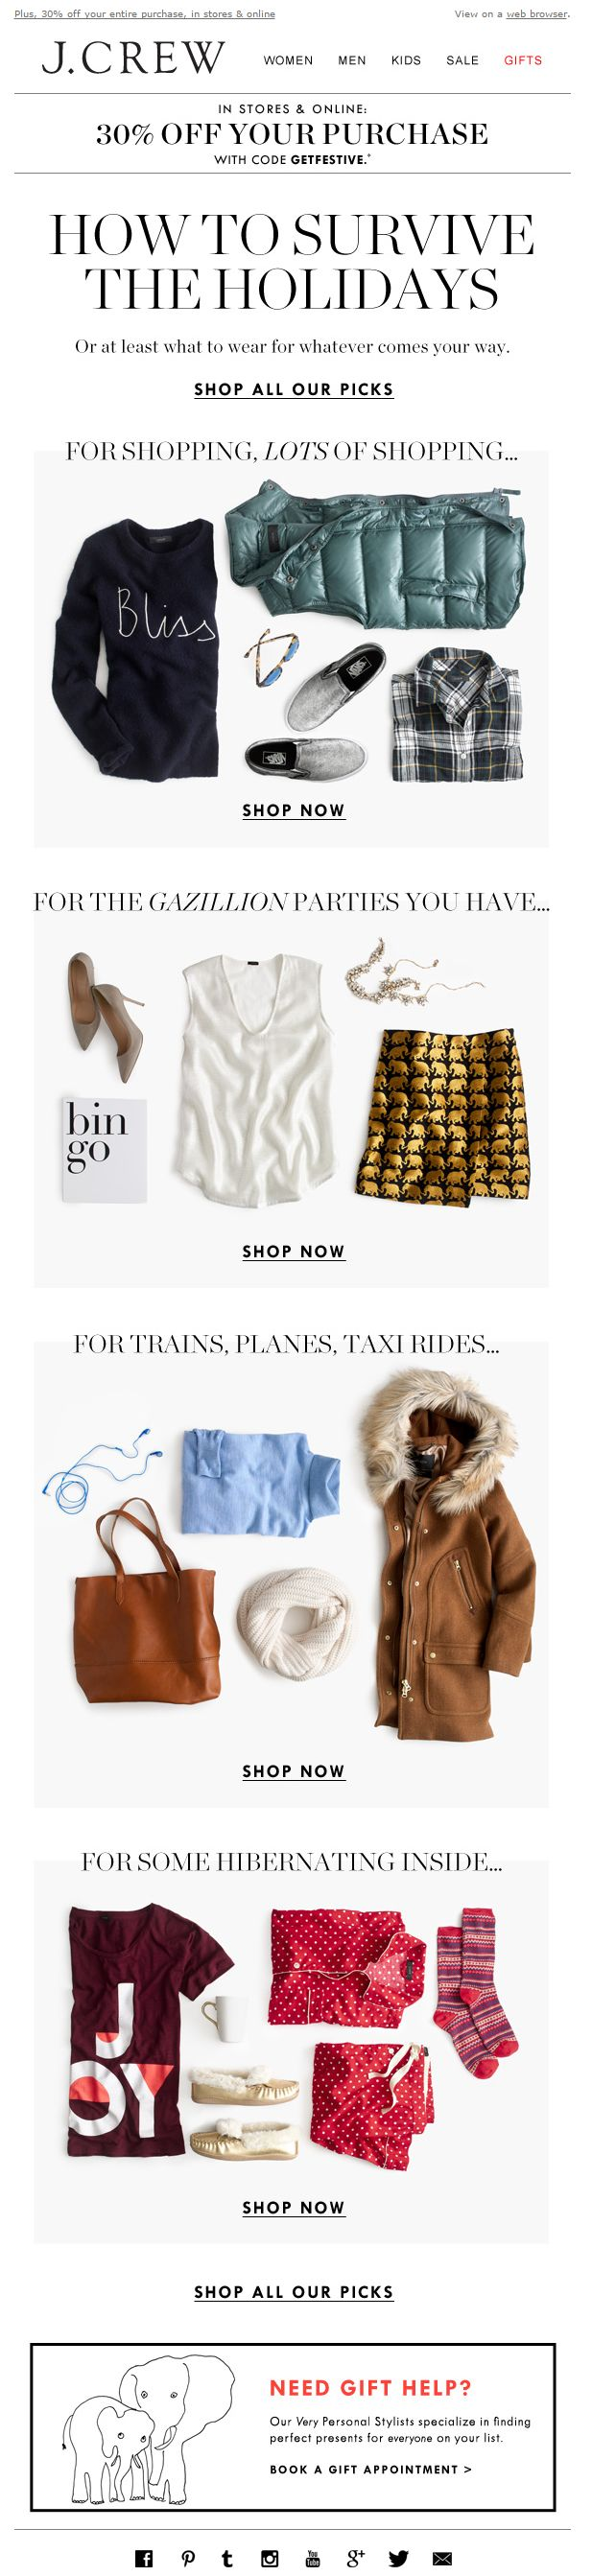 Great holiday content from J.Crew